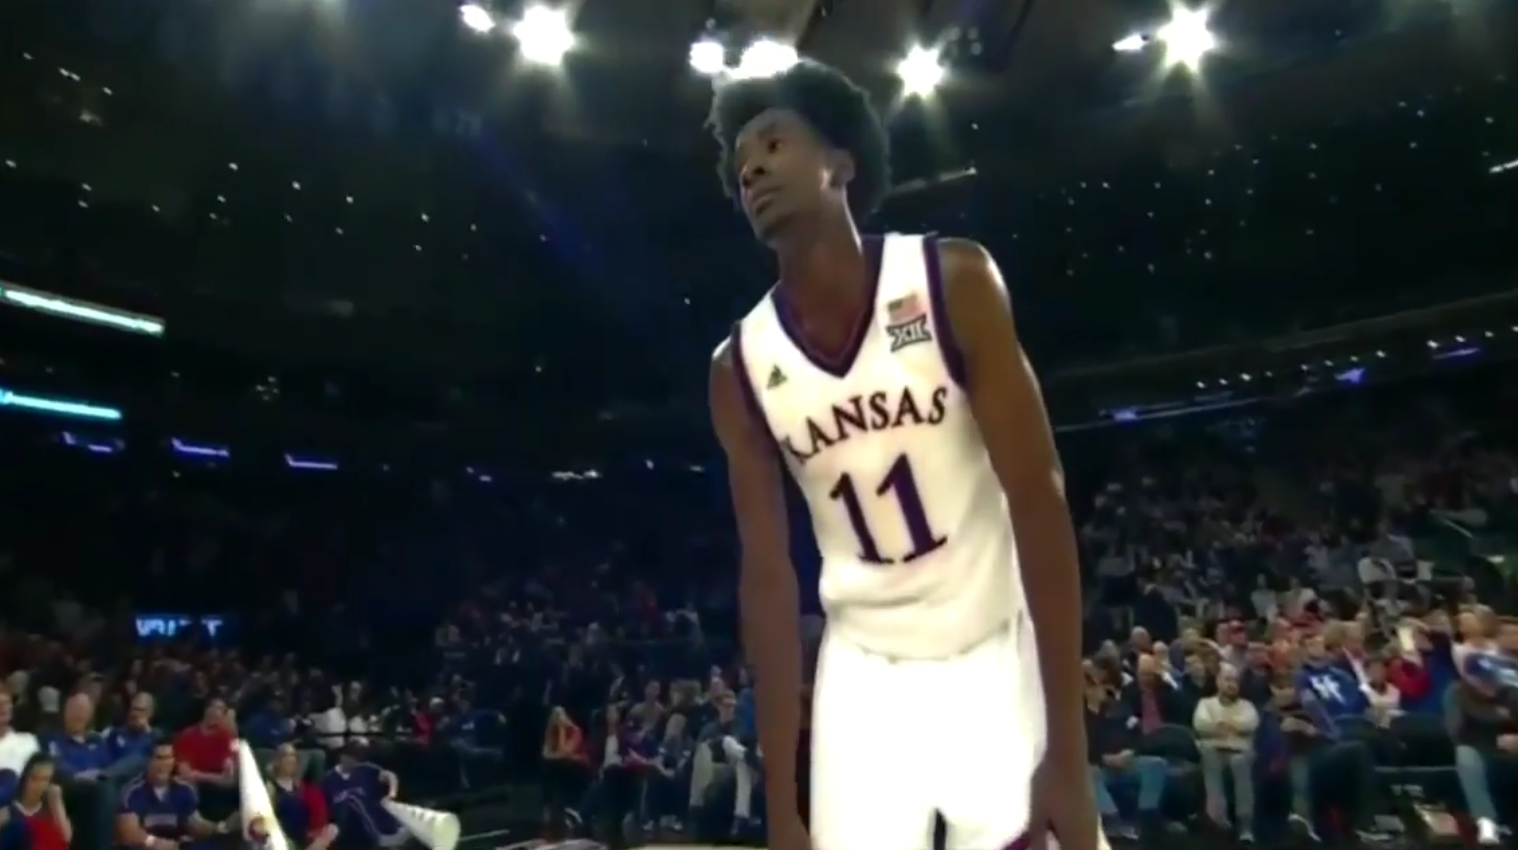 Le prospect Josh Jackson fait sensation à la March Madness